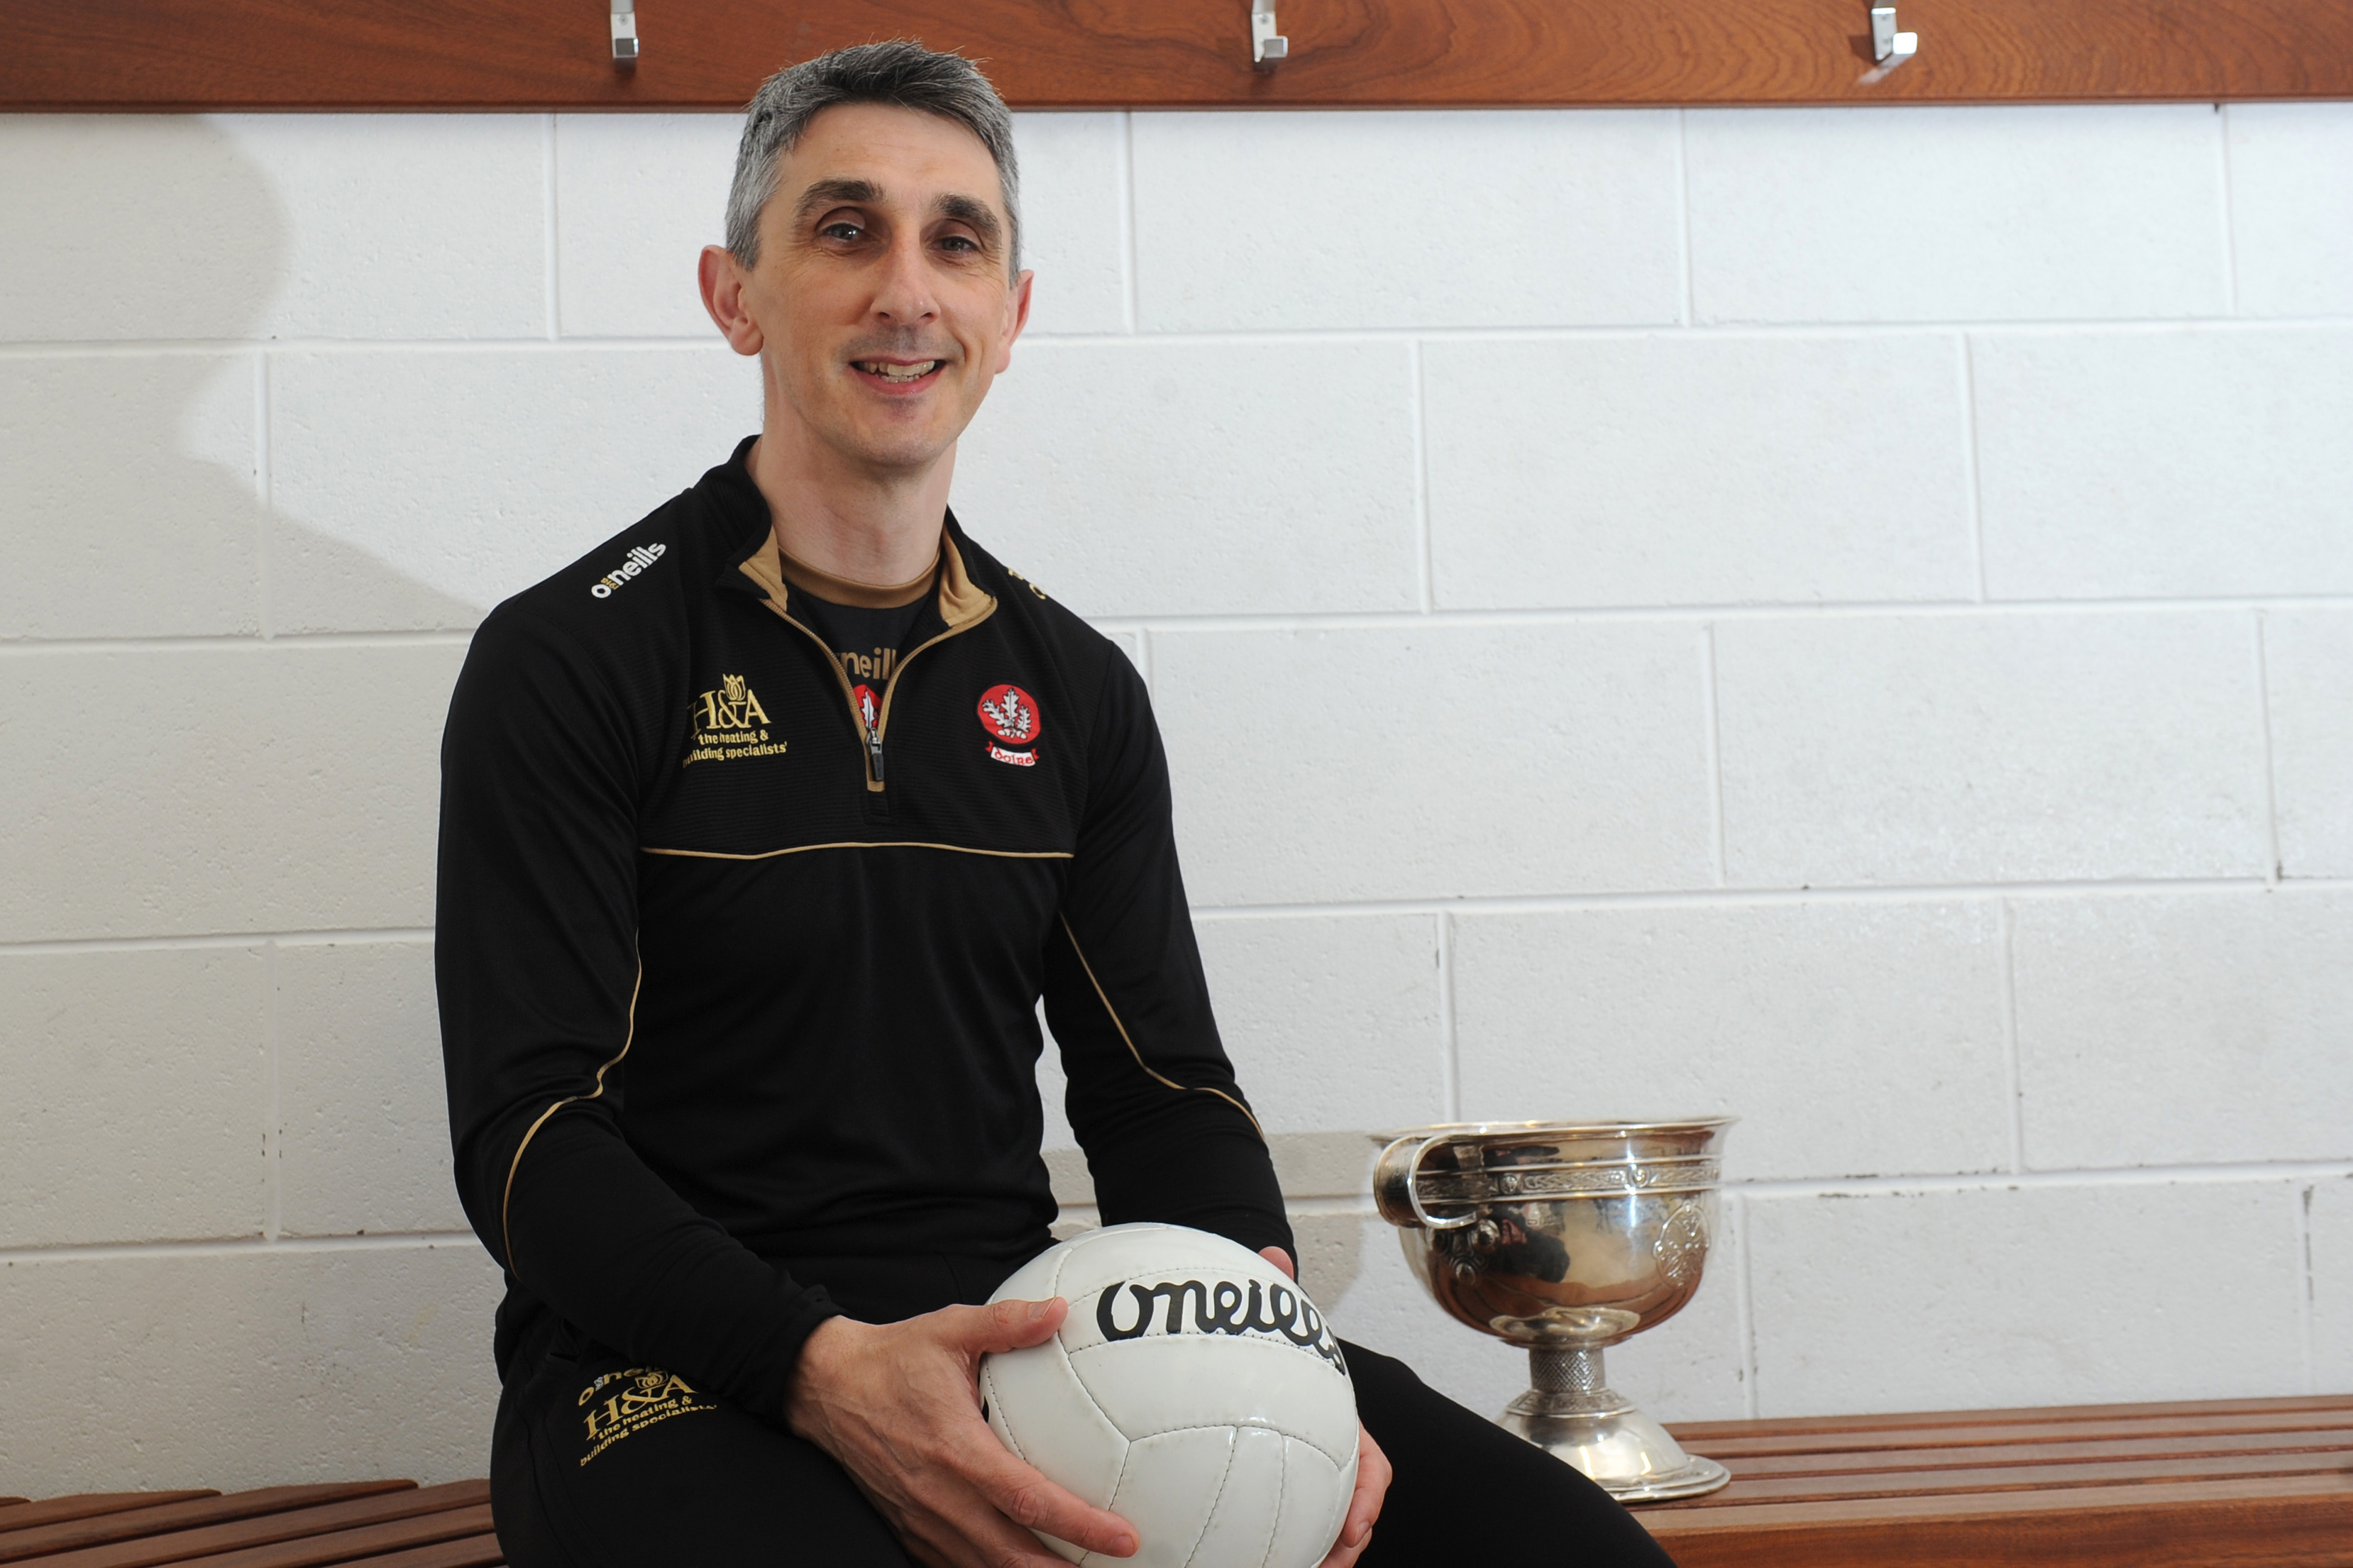 Derry manager Campbell happy with championship preparation